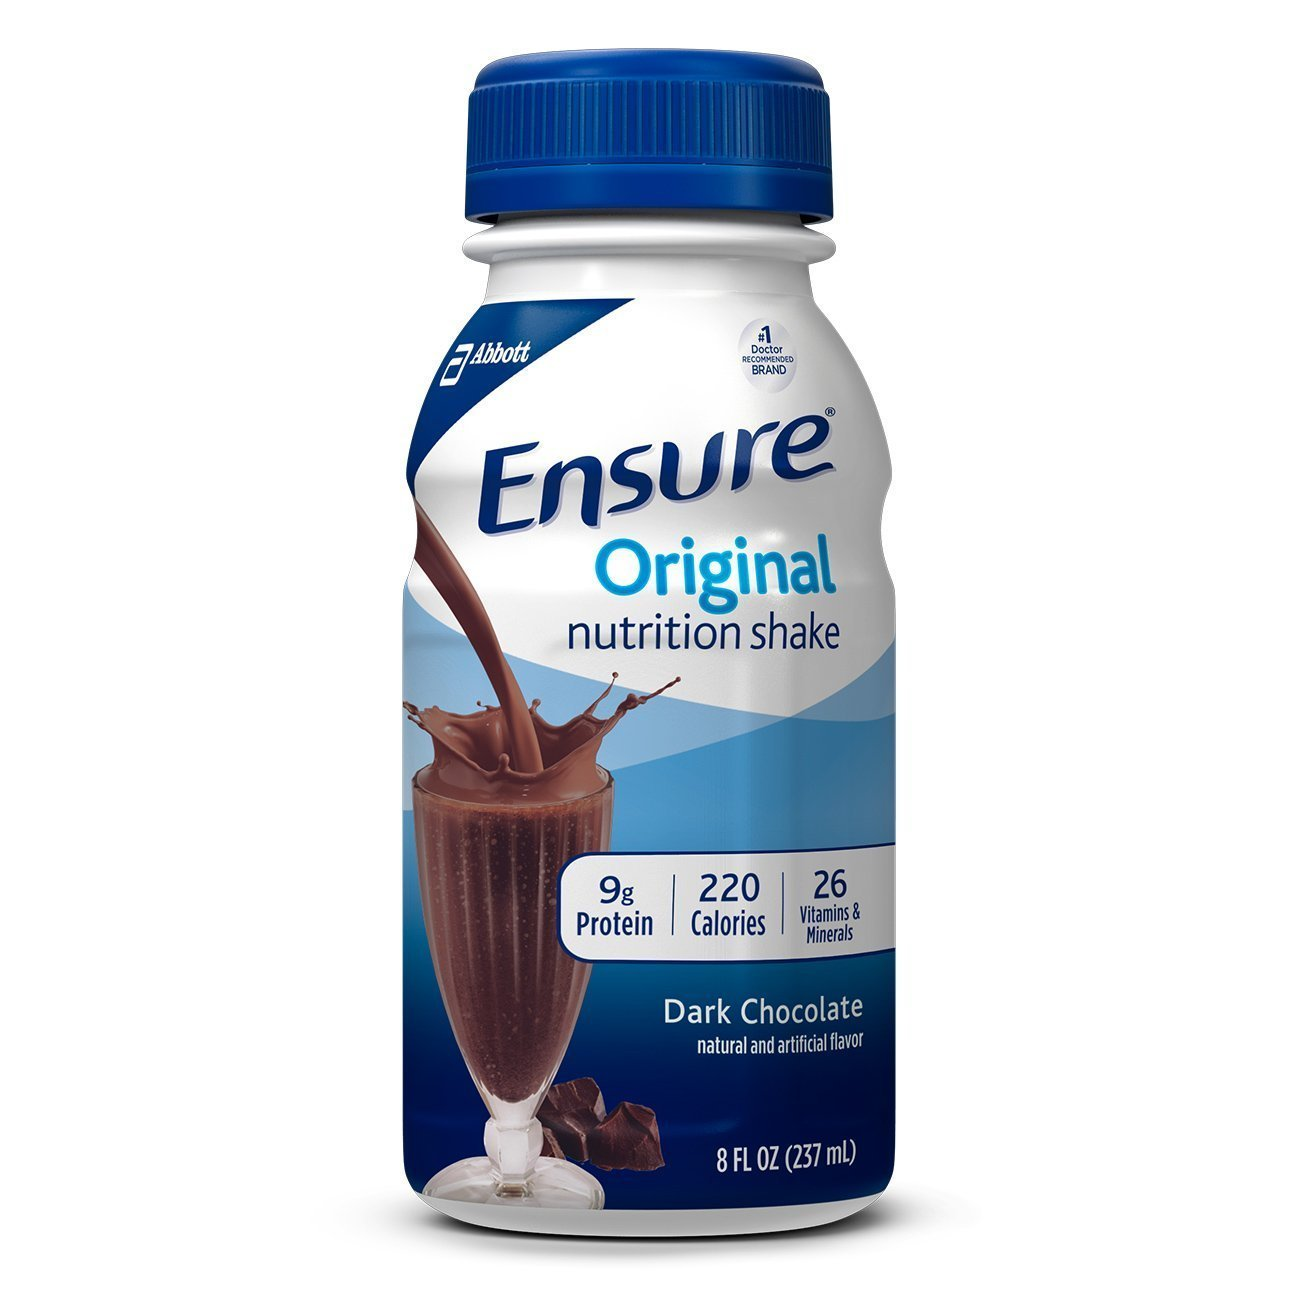 Ensure Original Nutrition Shake, Dark Chocolate, 8 Ounces, 6 Count